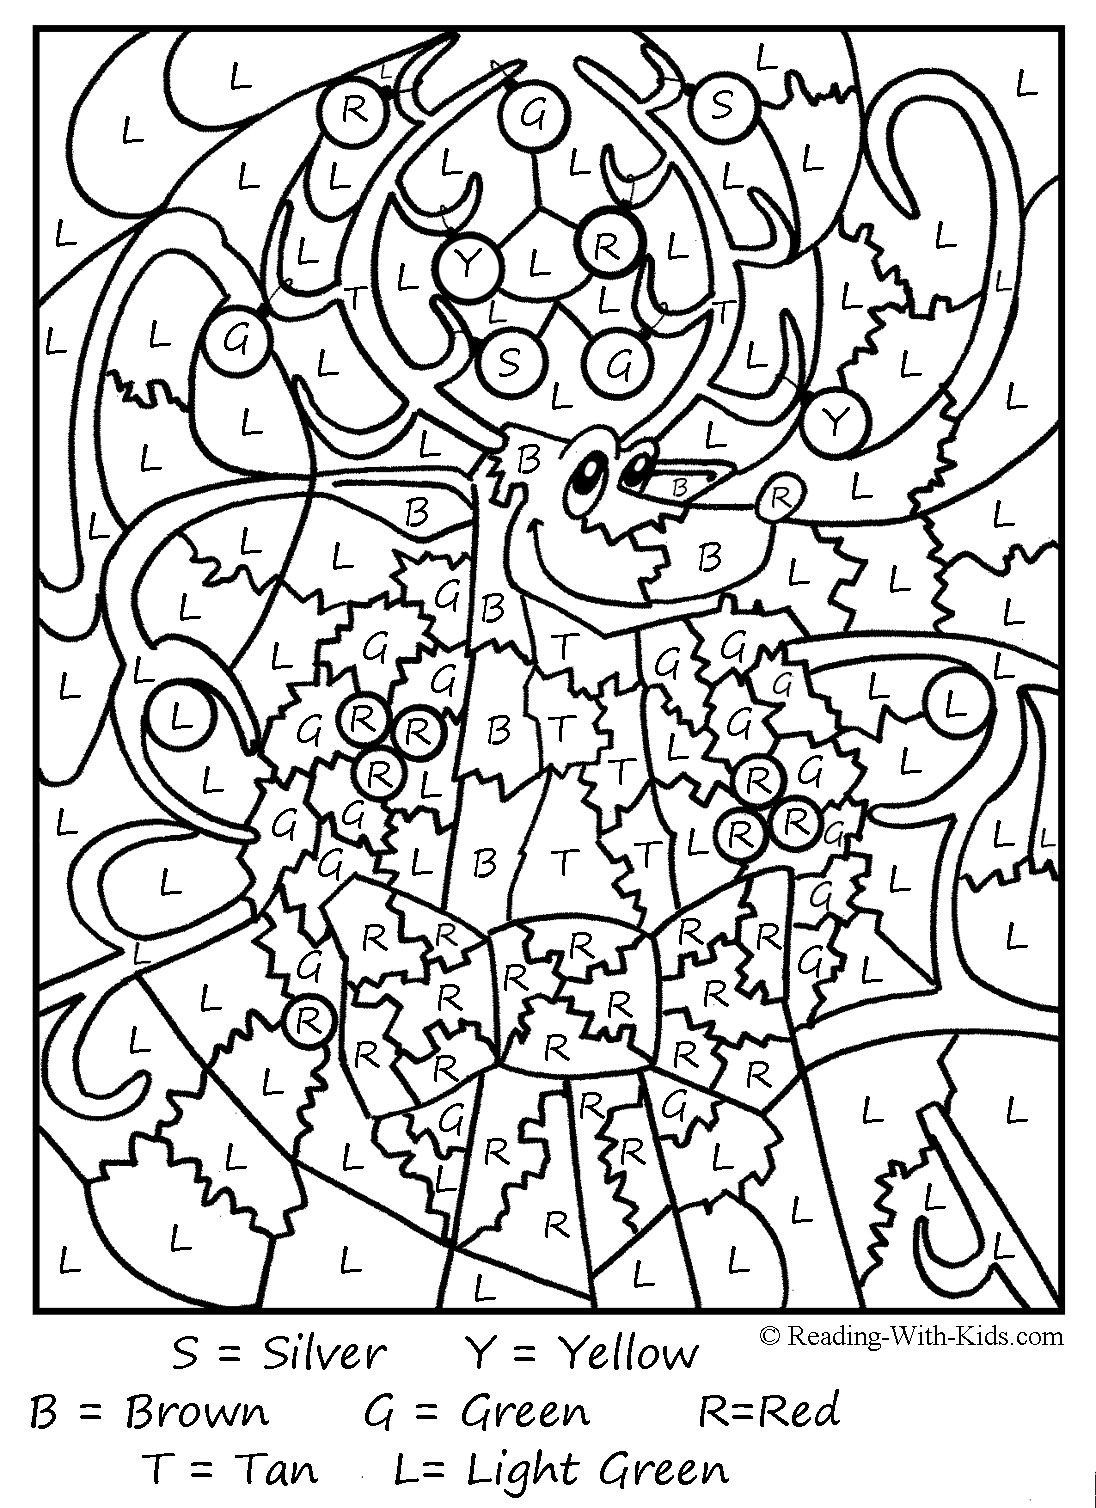 Christmas Colornumber Coloring Pages Printable   Coloring Pages - Free Printable Christmas Color By Number Coloring Pages